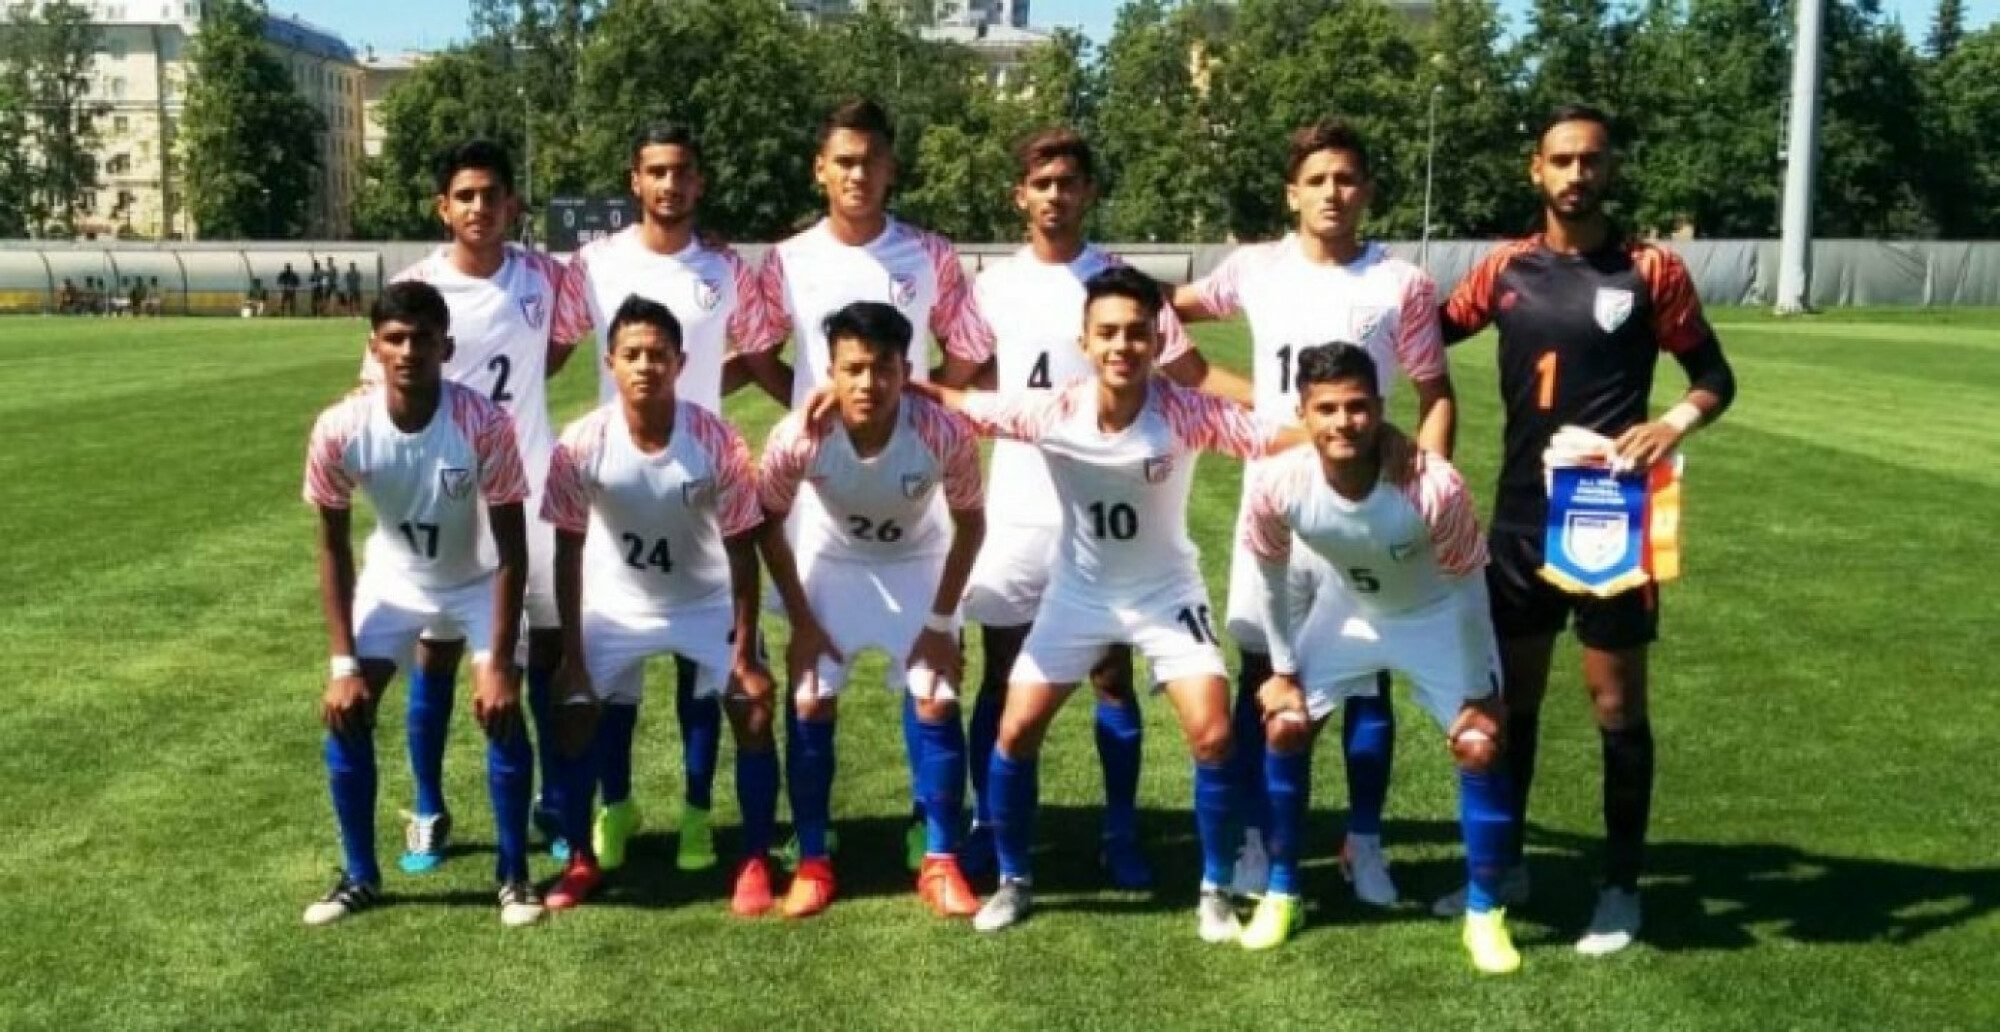 Granatkin Memorial 2019: India go down to Kyrgyzstan on penalties